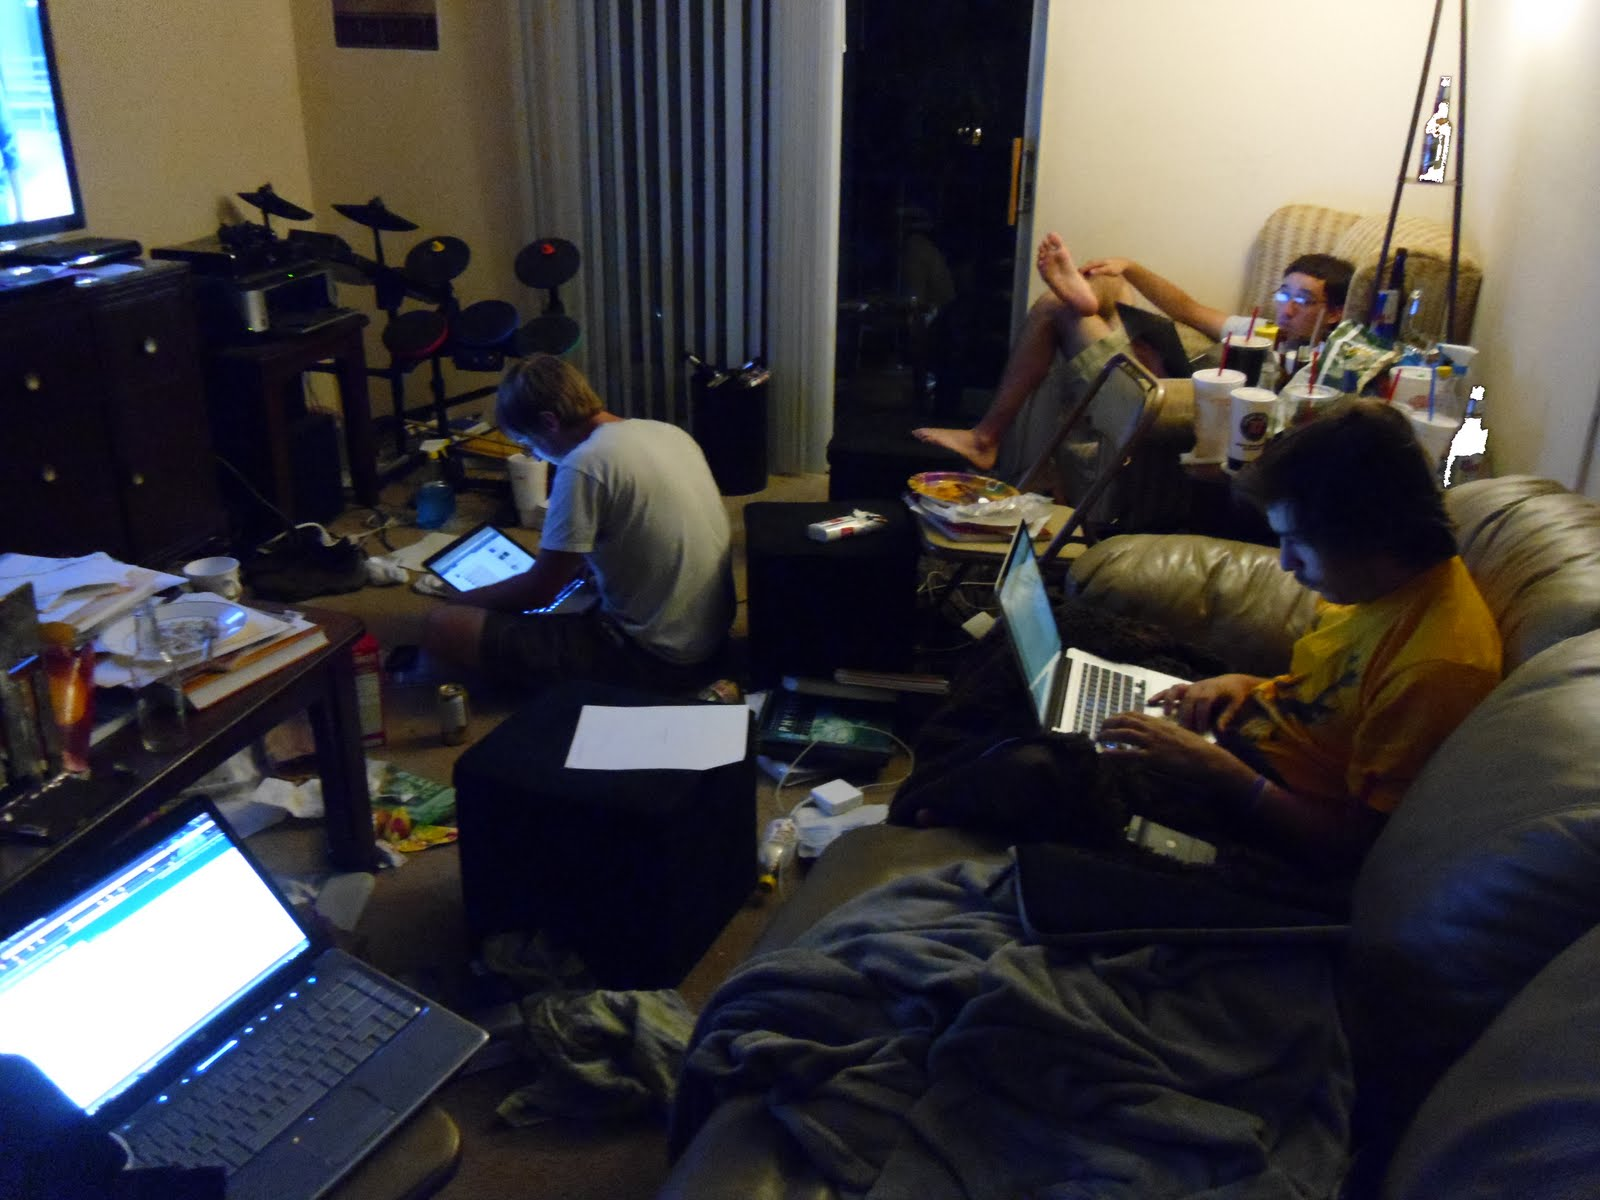 Three typical college students on their laptops in an extremely messy apartment.